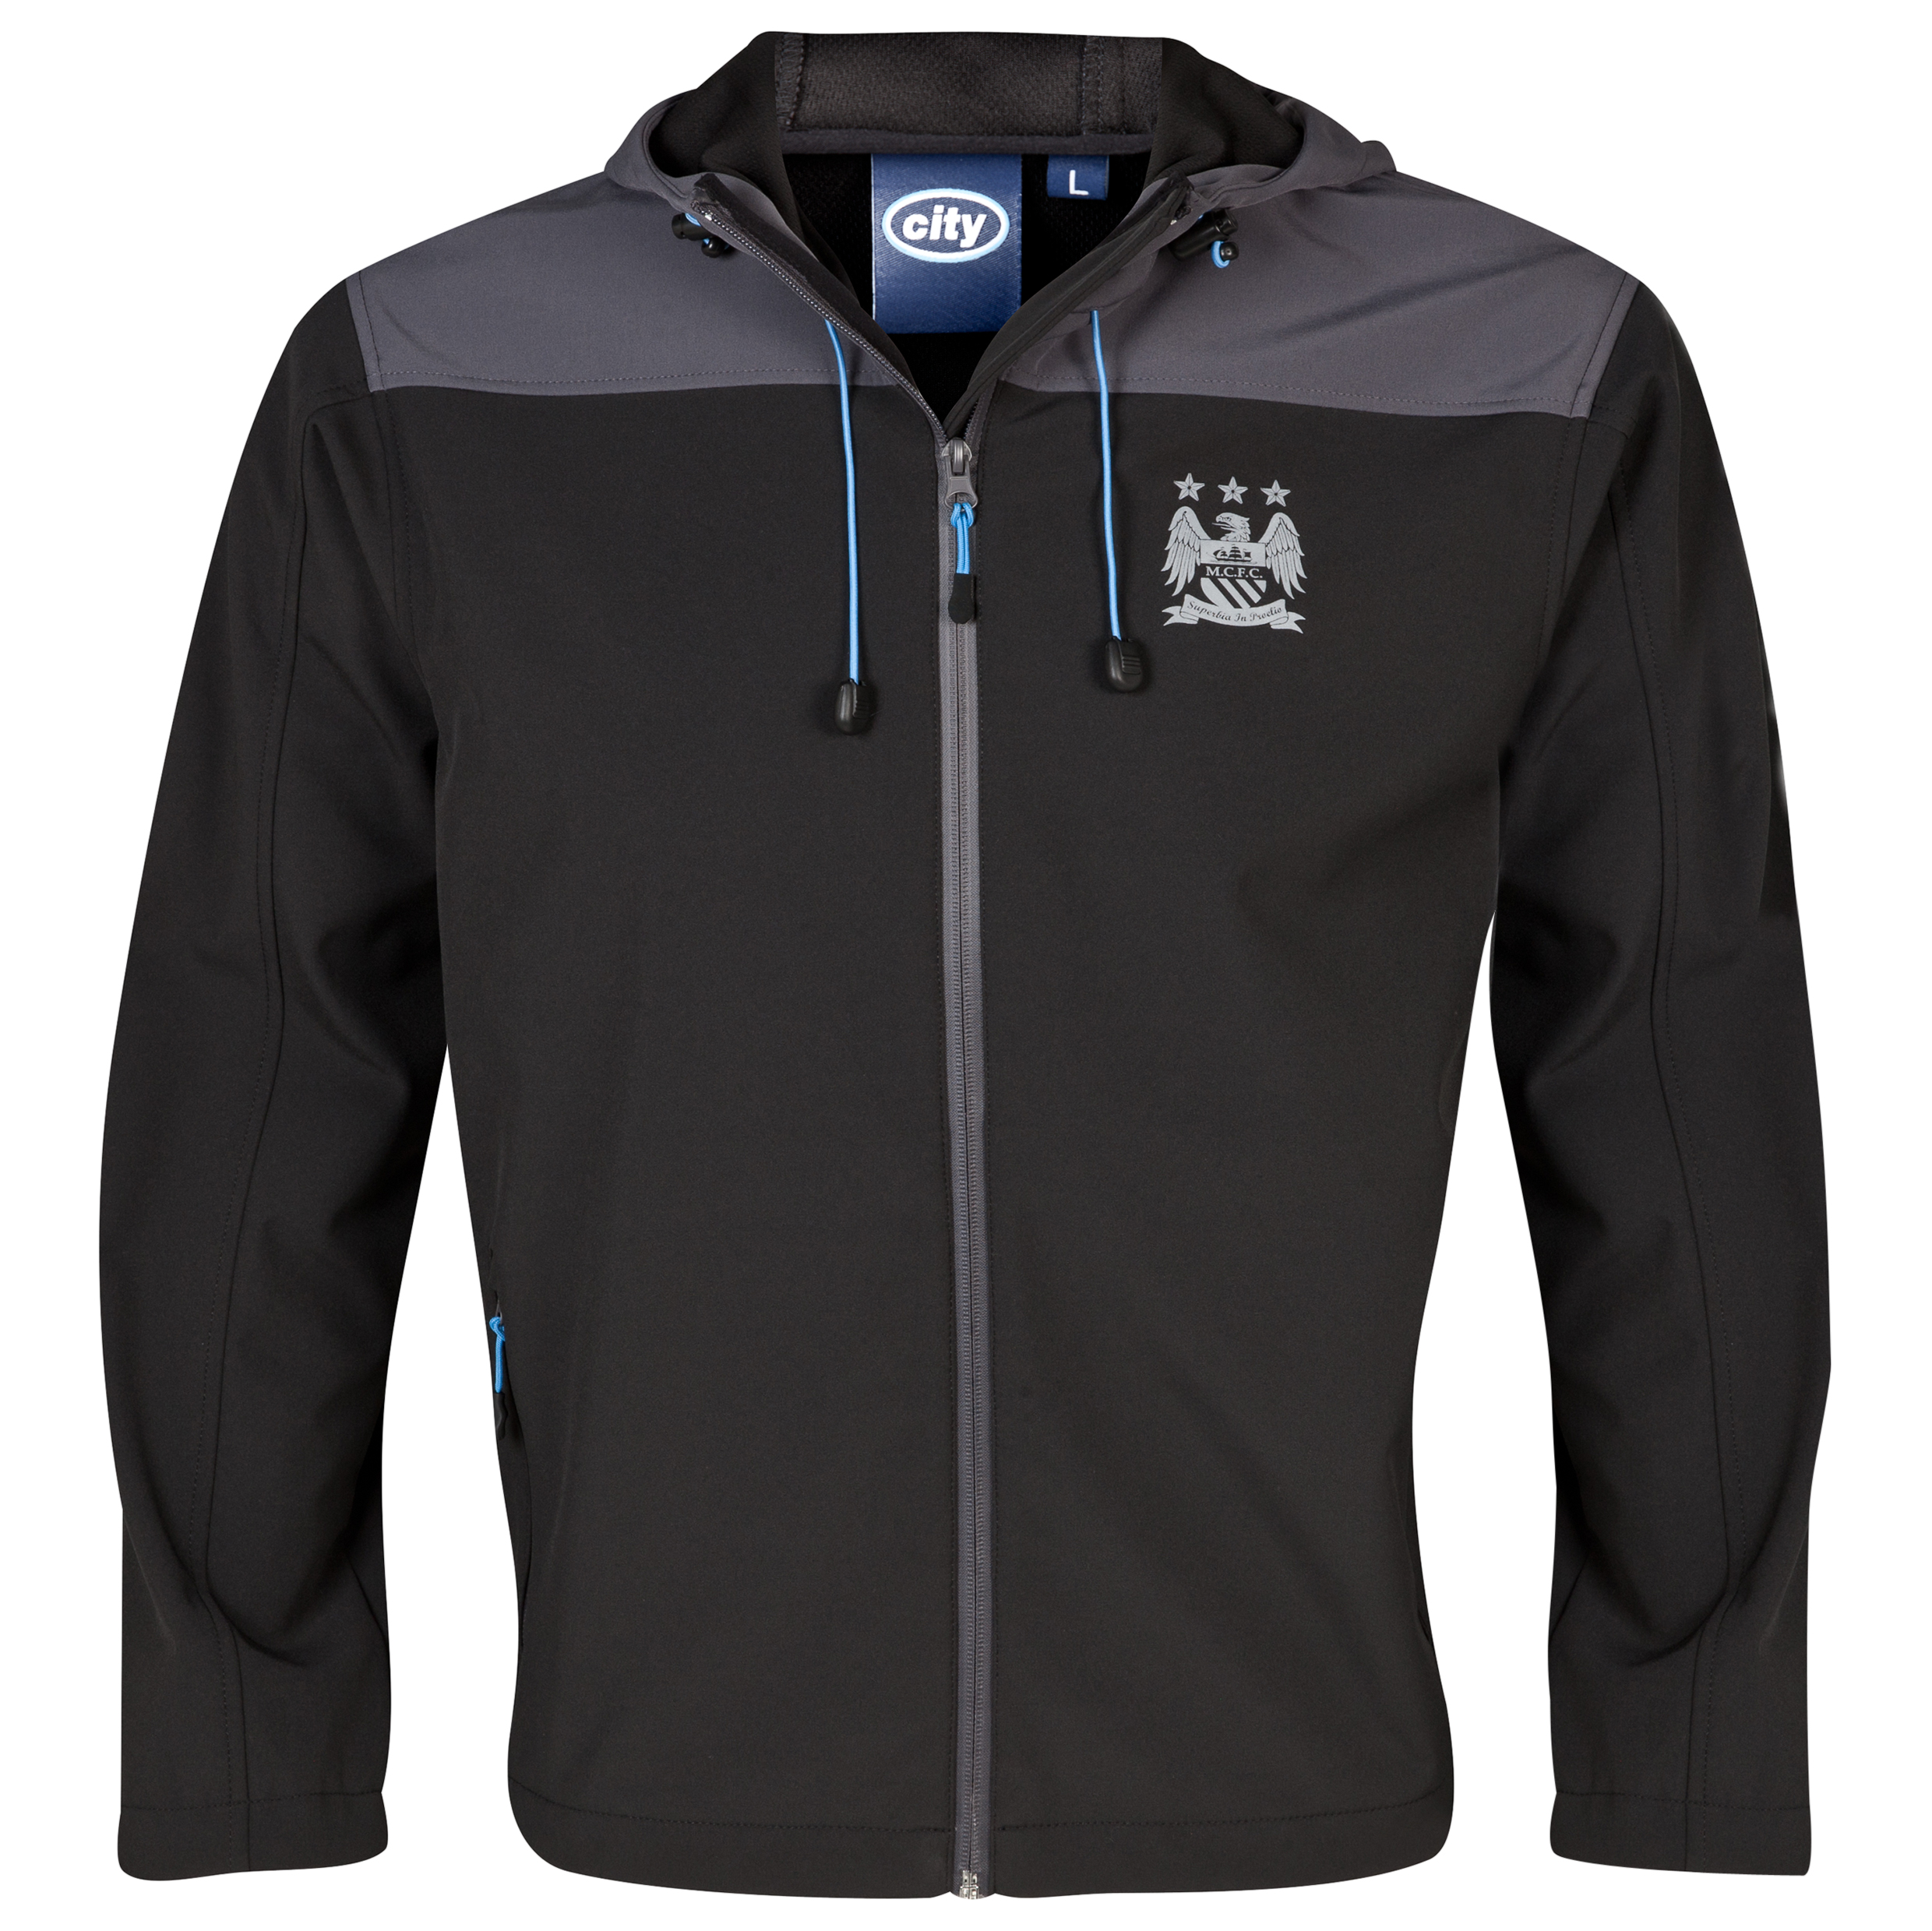 Manchester City Performance Crag Jacket - Mens Black